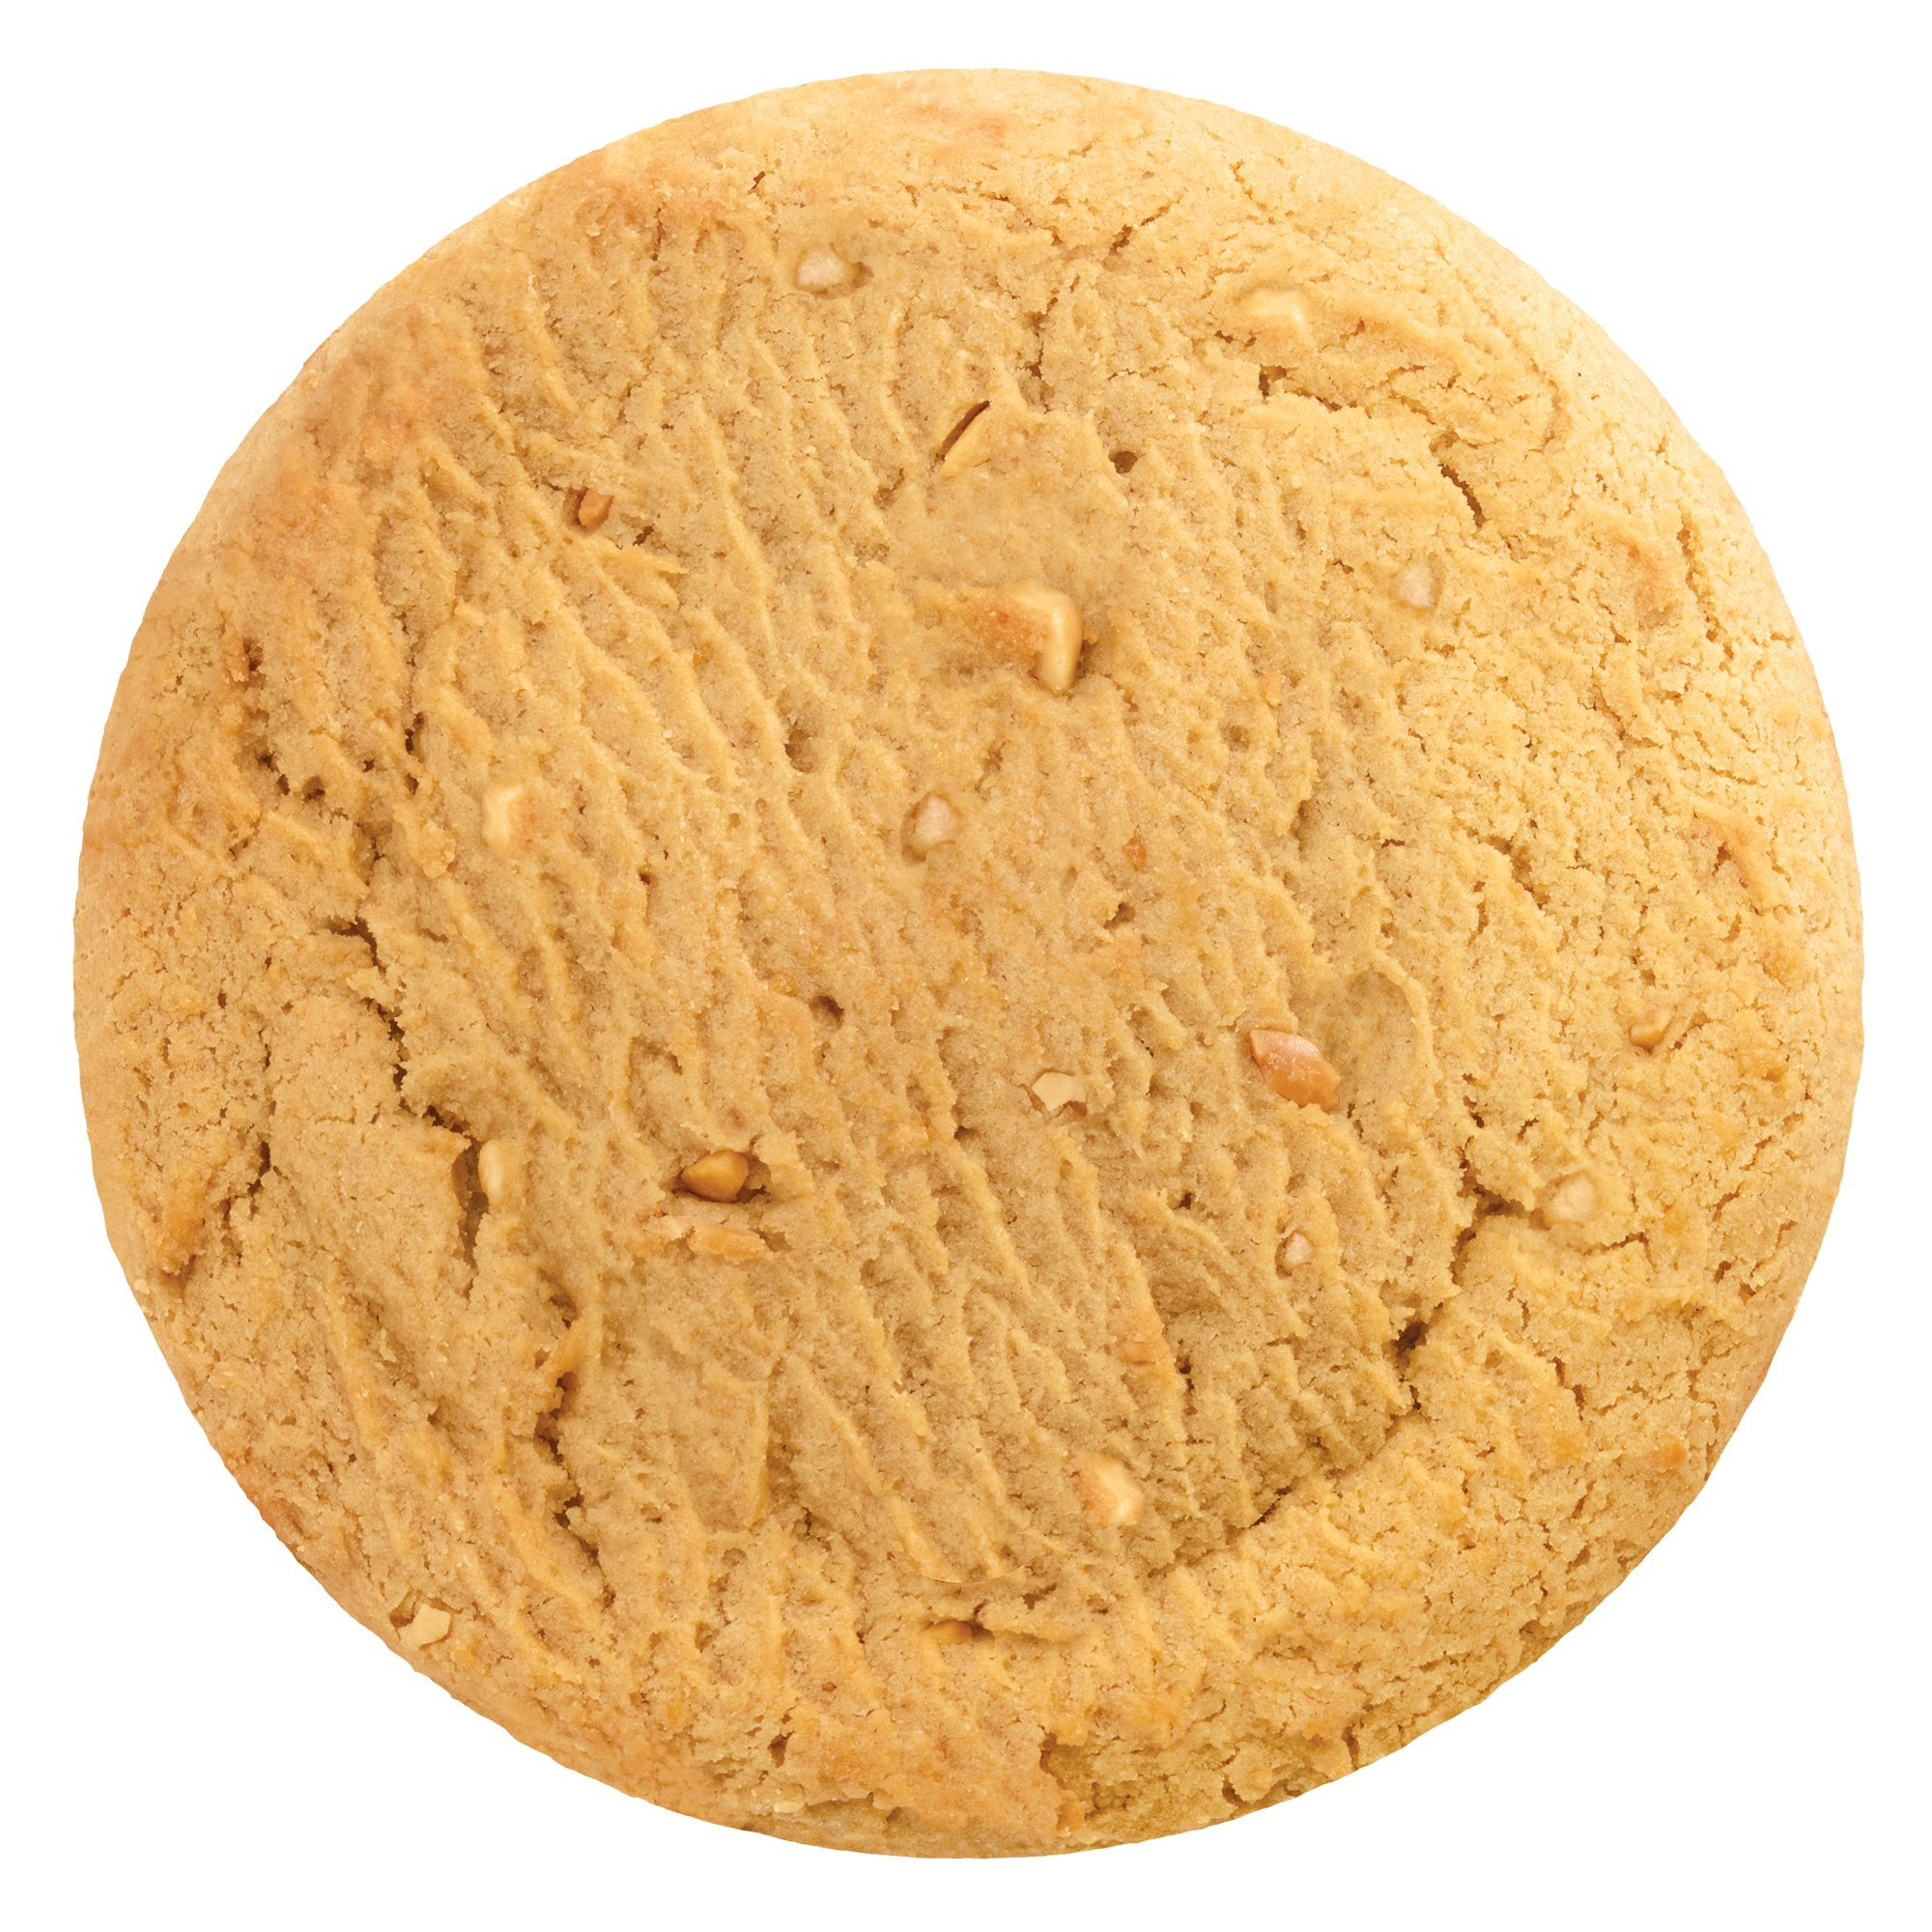 Lenny & Larry's The Complete Cookie, Peanut Butter, 4 Ounce Cookies - 12 Count, Soft Baked, Vegan and Non GMO Protein Cookies by Lenny & Larry's (Image #3)